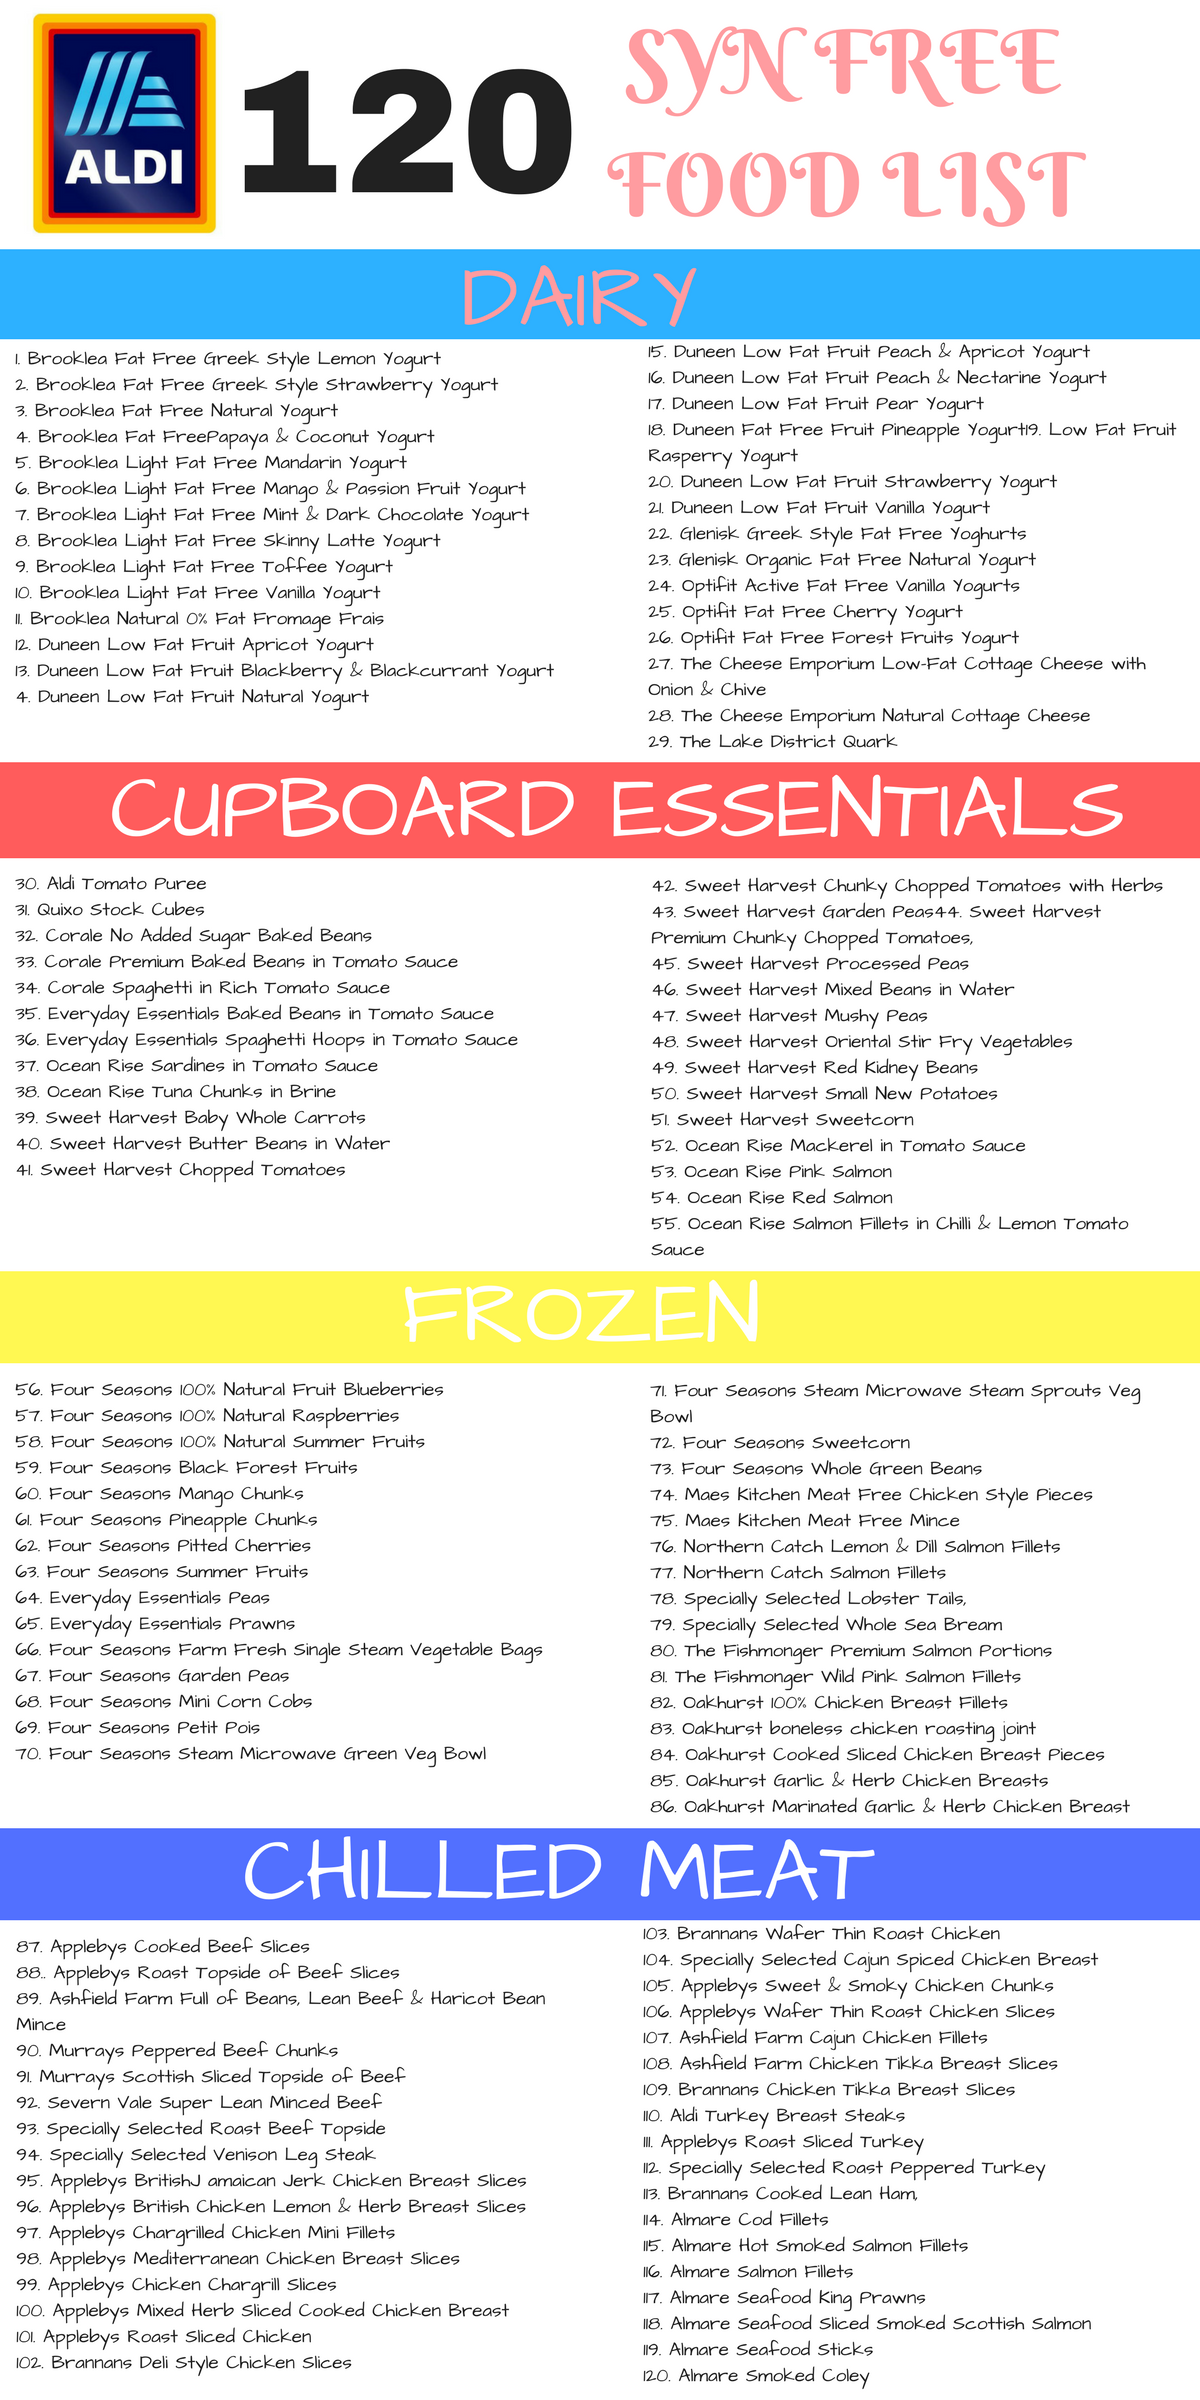 Free Food List Slimming World